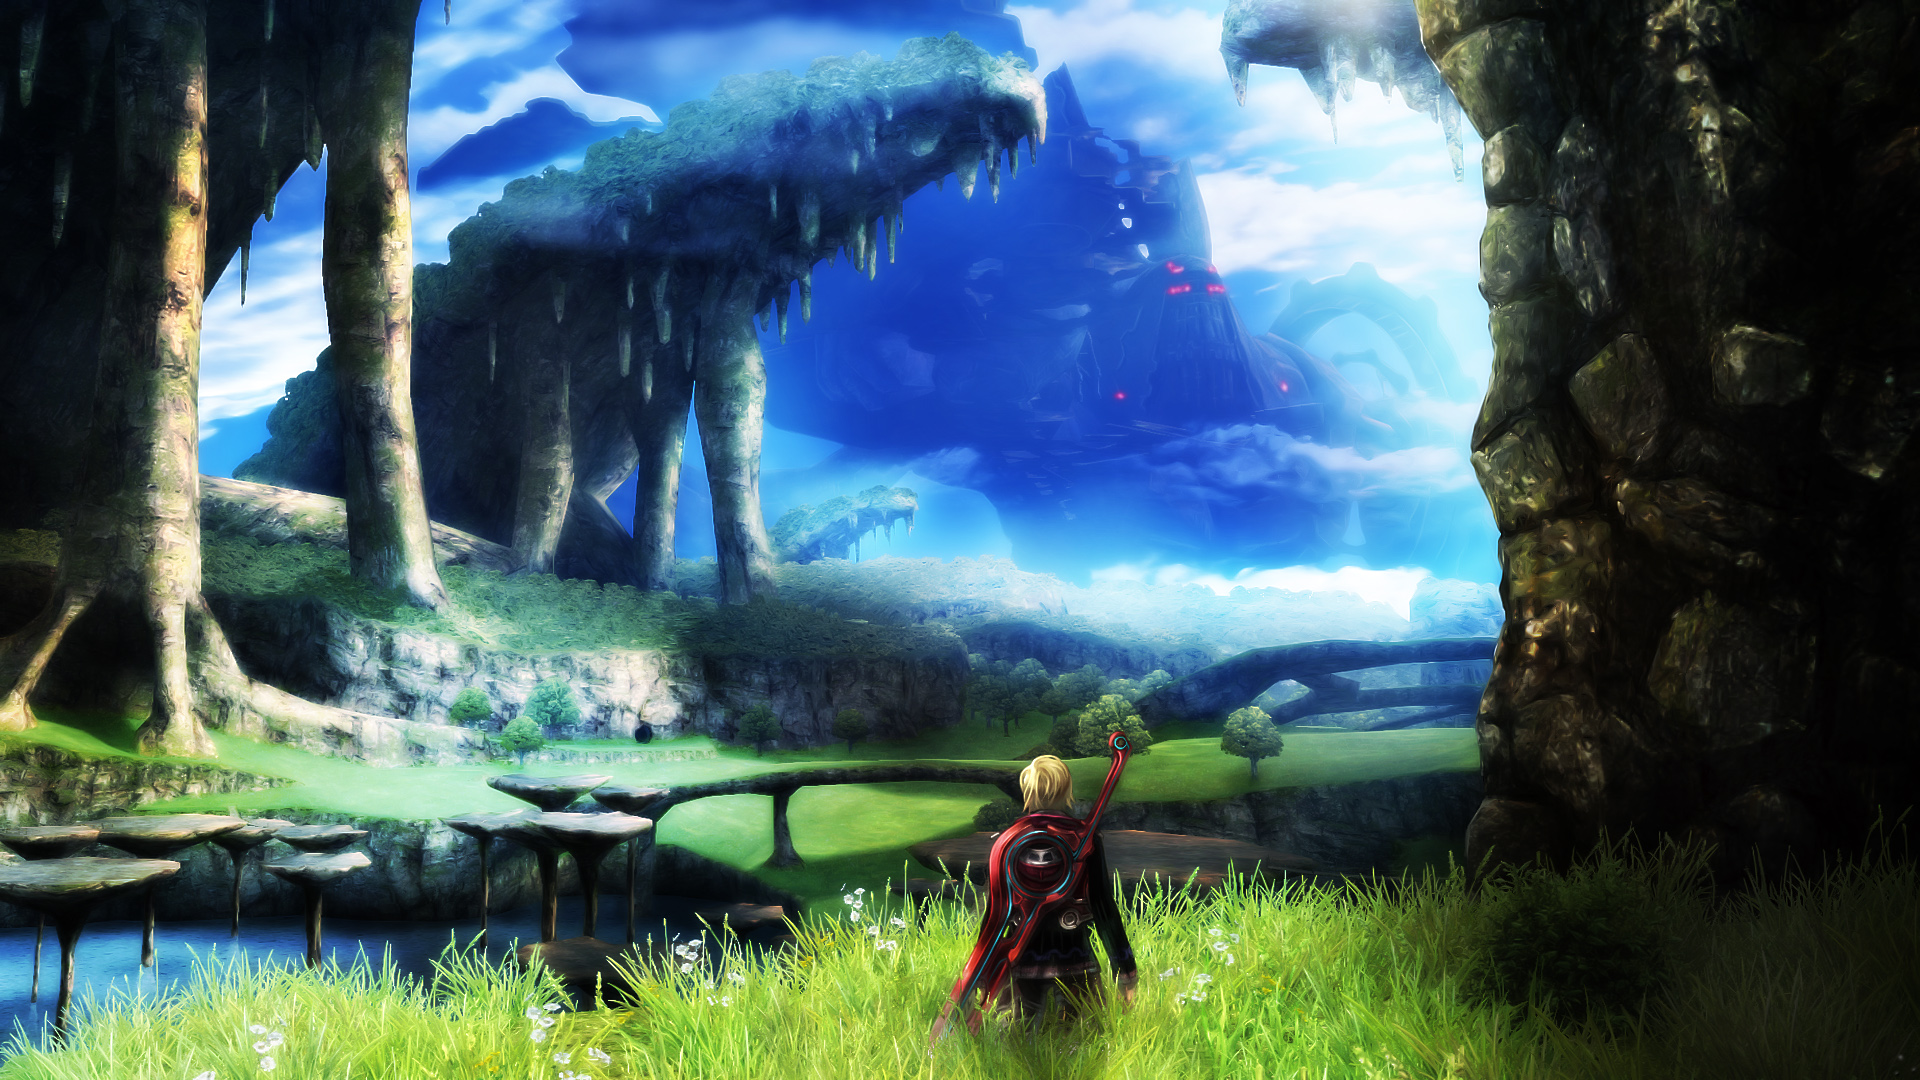 wallpaper_1080p_xenoblade_by_deaviantwatcher-d3razui